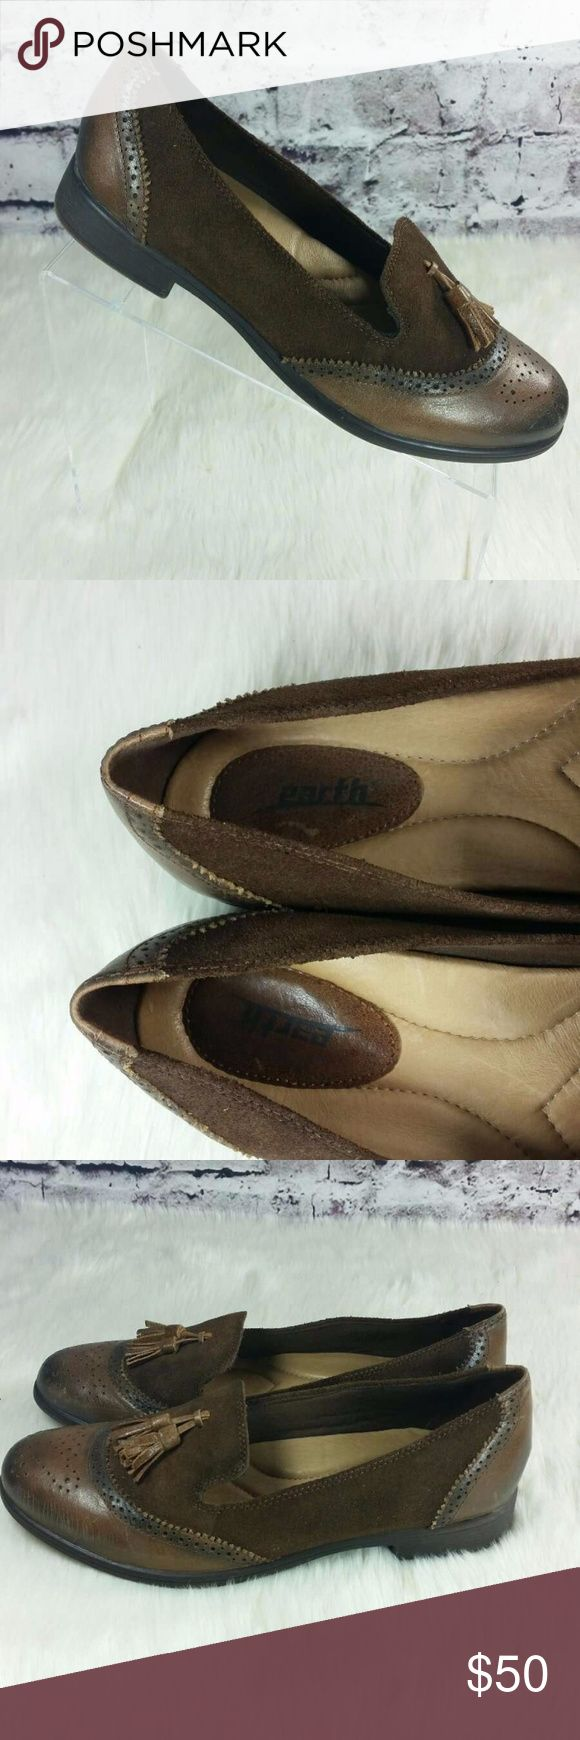 """Earth Shoes Scarlet almond womens brogue loafers Earth Shoes Scarlet almond womens brogue tassel loafers 9B  heel:1""""  Condition: pre owned with minor wear. see all pics Earth Shoes Shoes Flats & Loafers"""